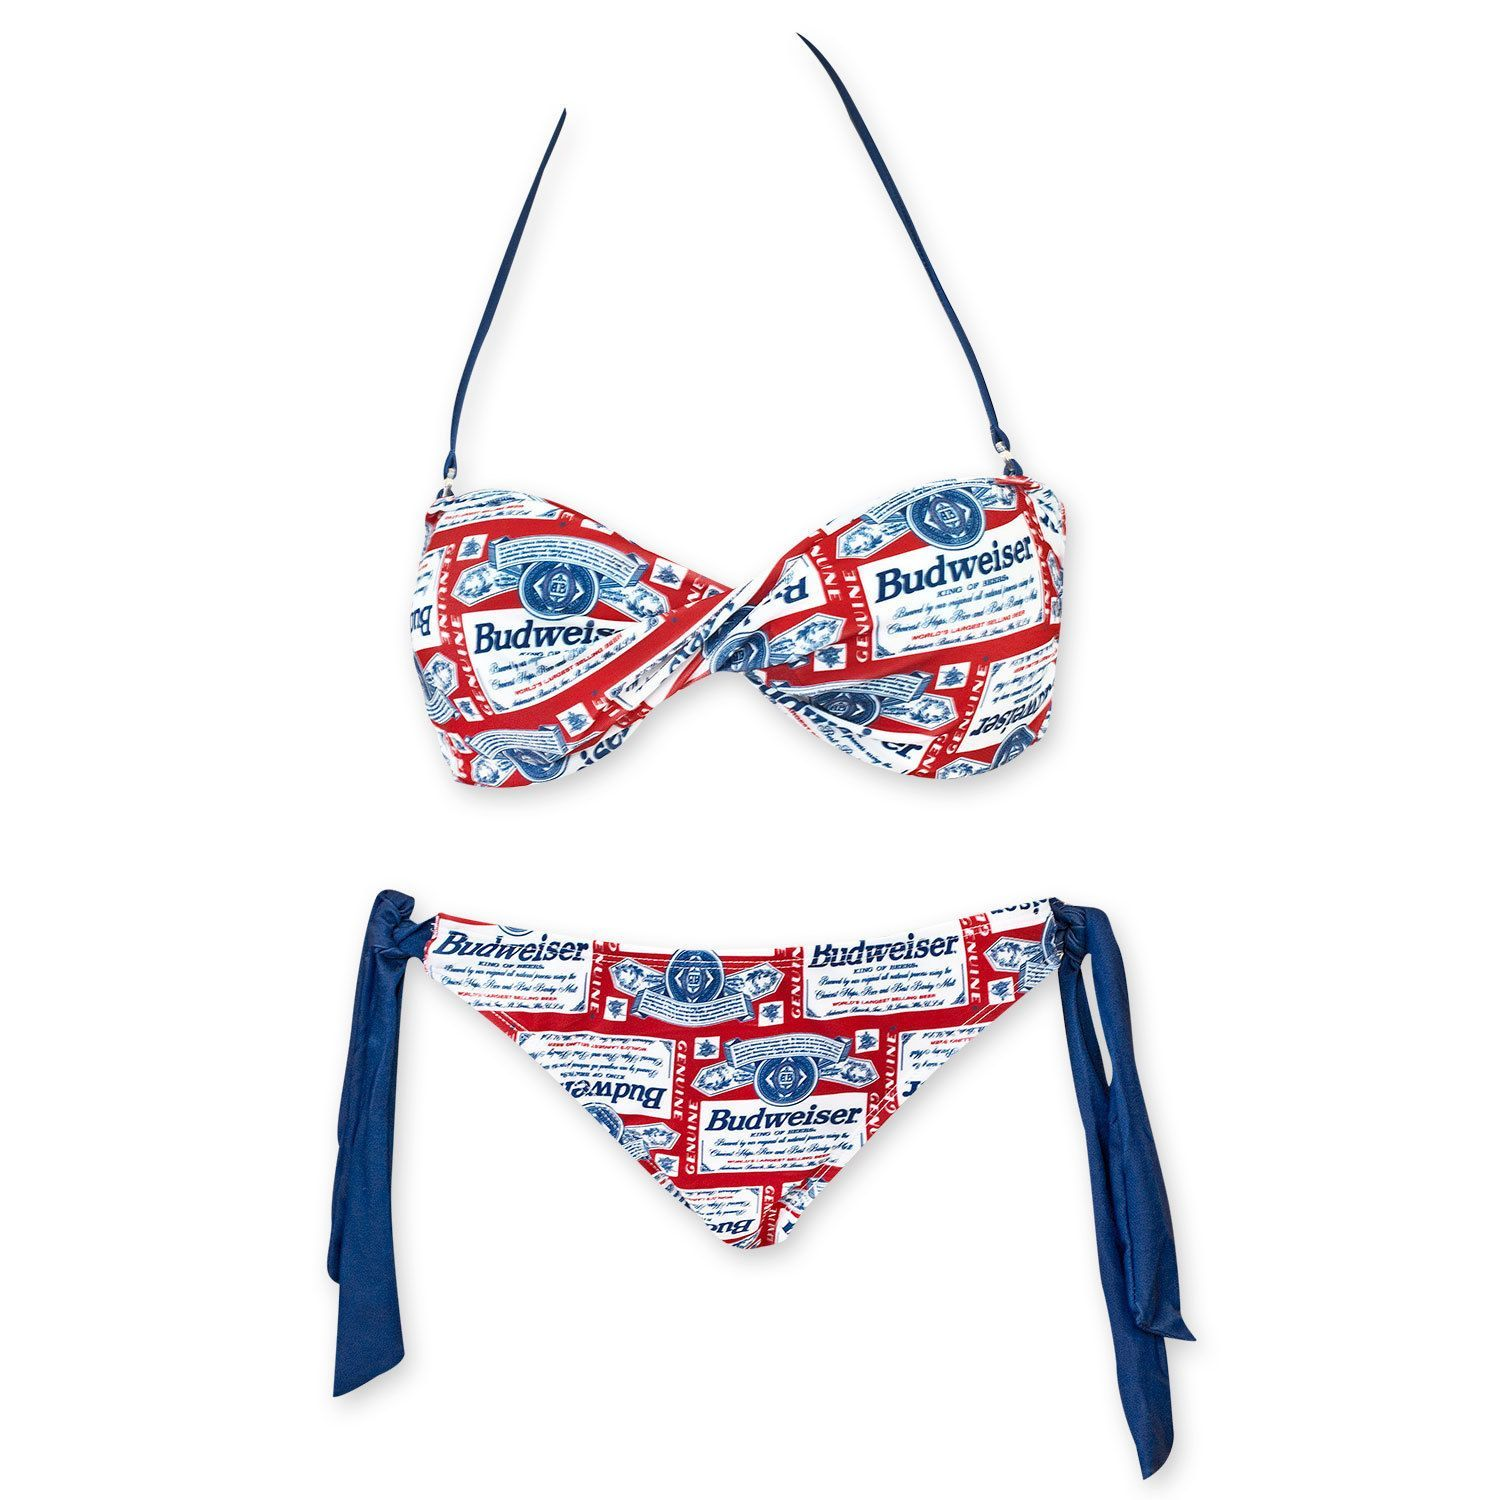 e3d15db8f9d01 Make a splash in this women s white and red Budweiser twist top bikini.  This bikini